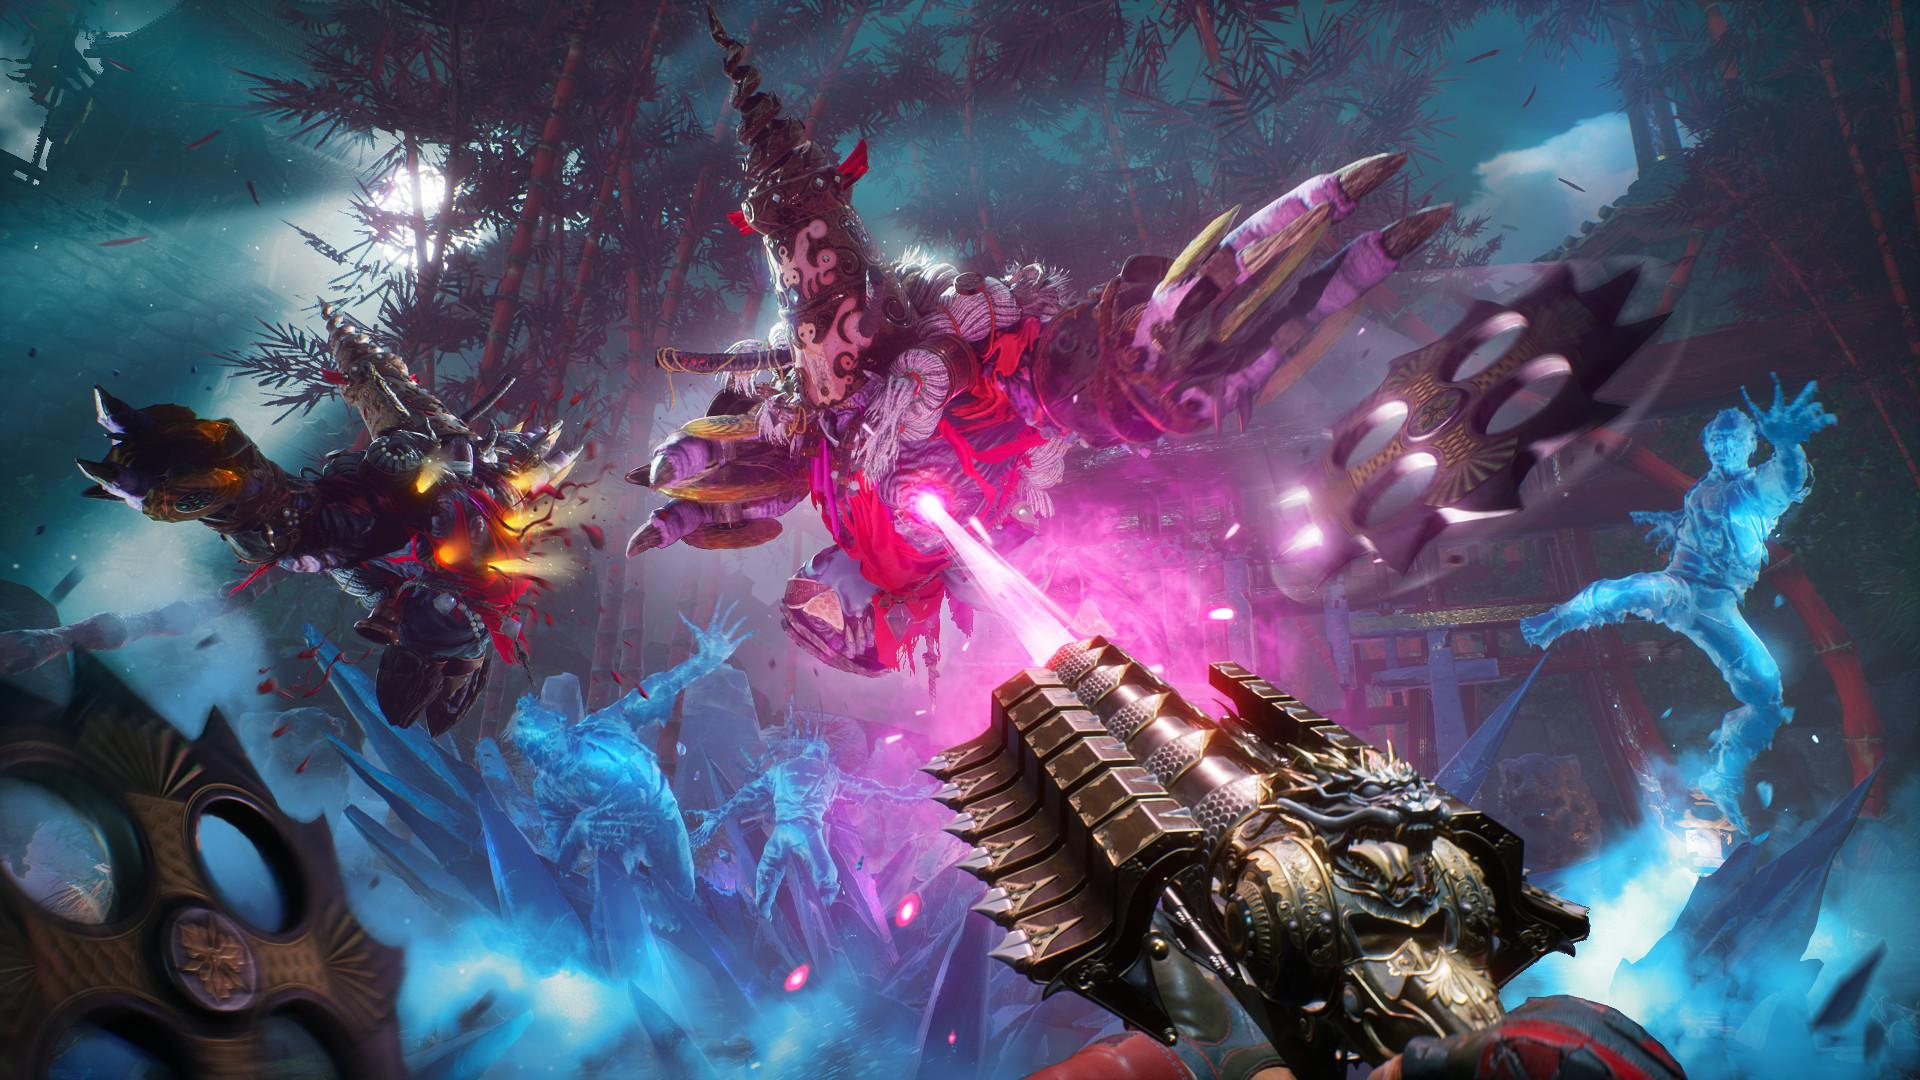 Shadow Warrior 3 innovates on the series' formula by adding new weapons and traversal mechanics